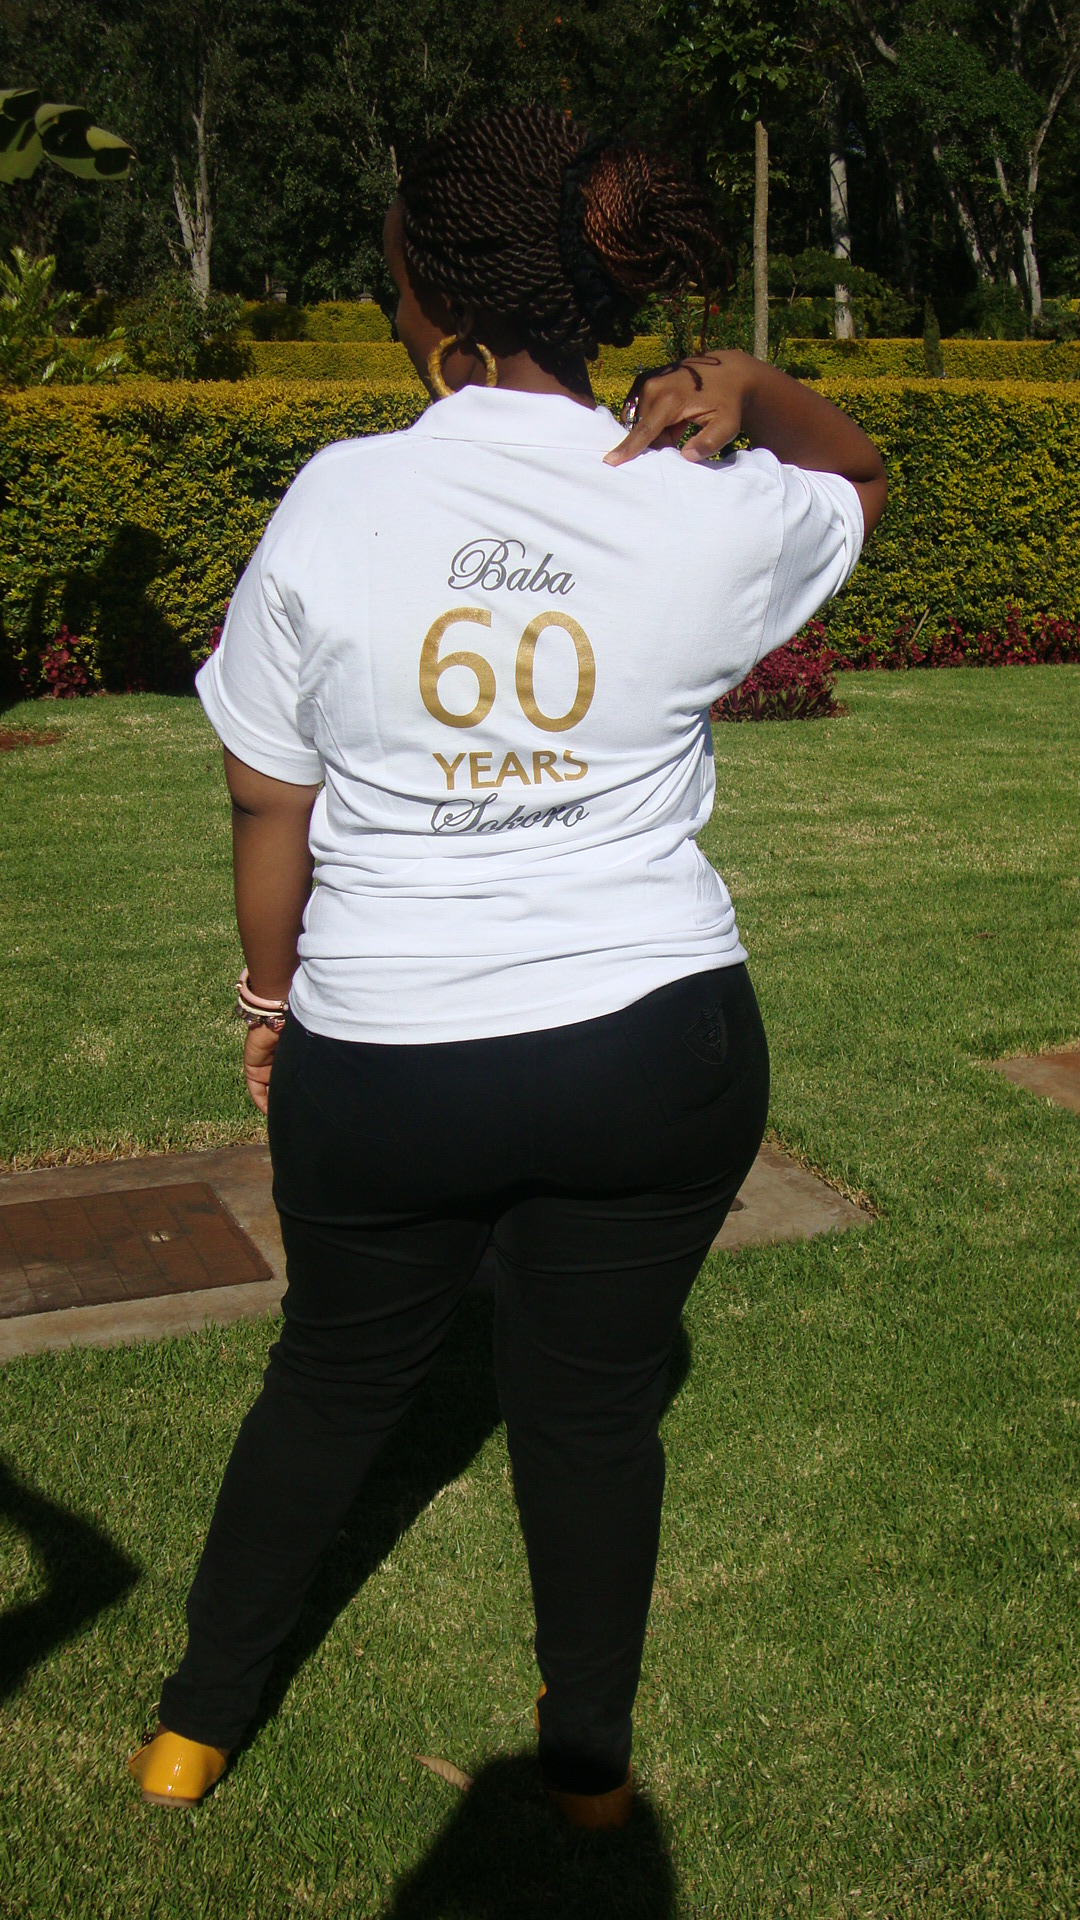 A shot of the back of the shirt. 60 years! :-)